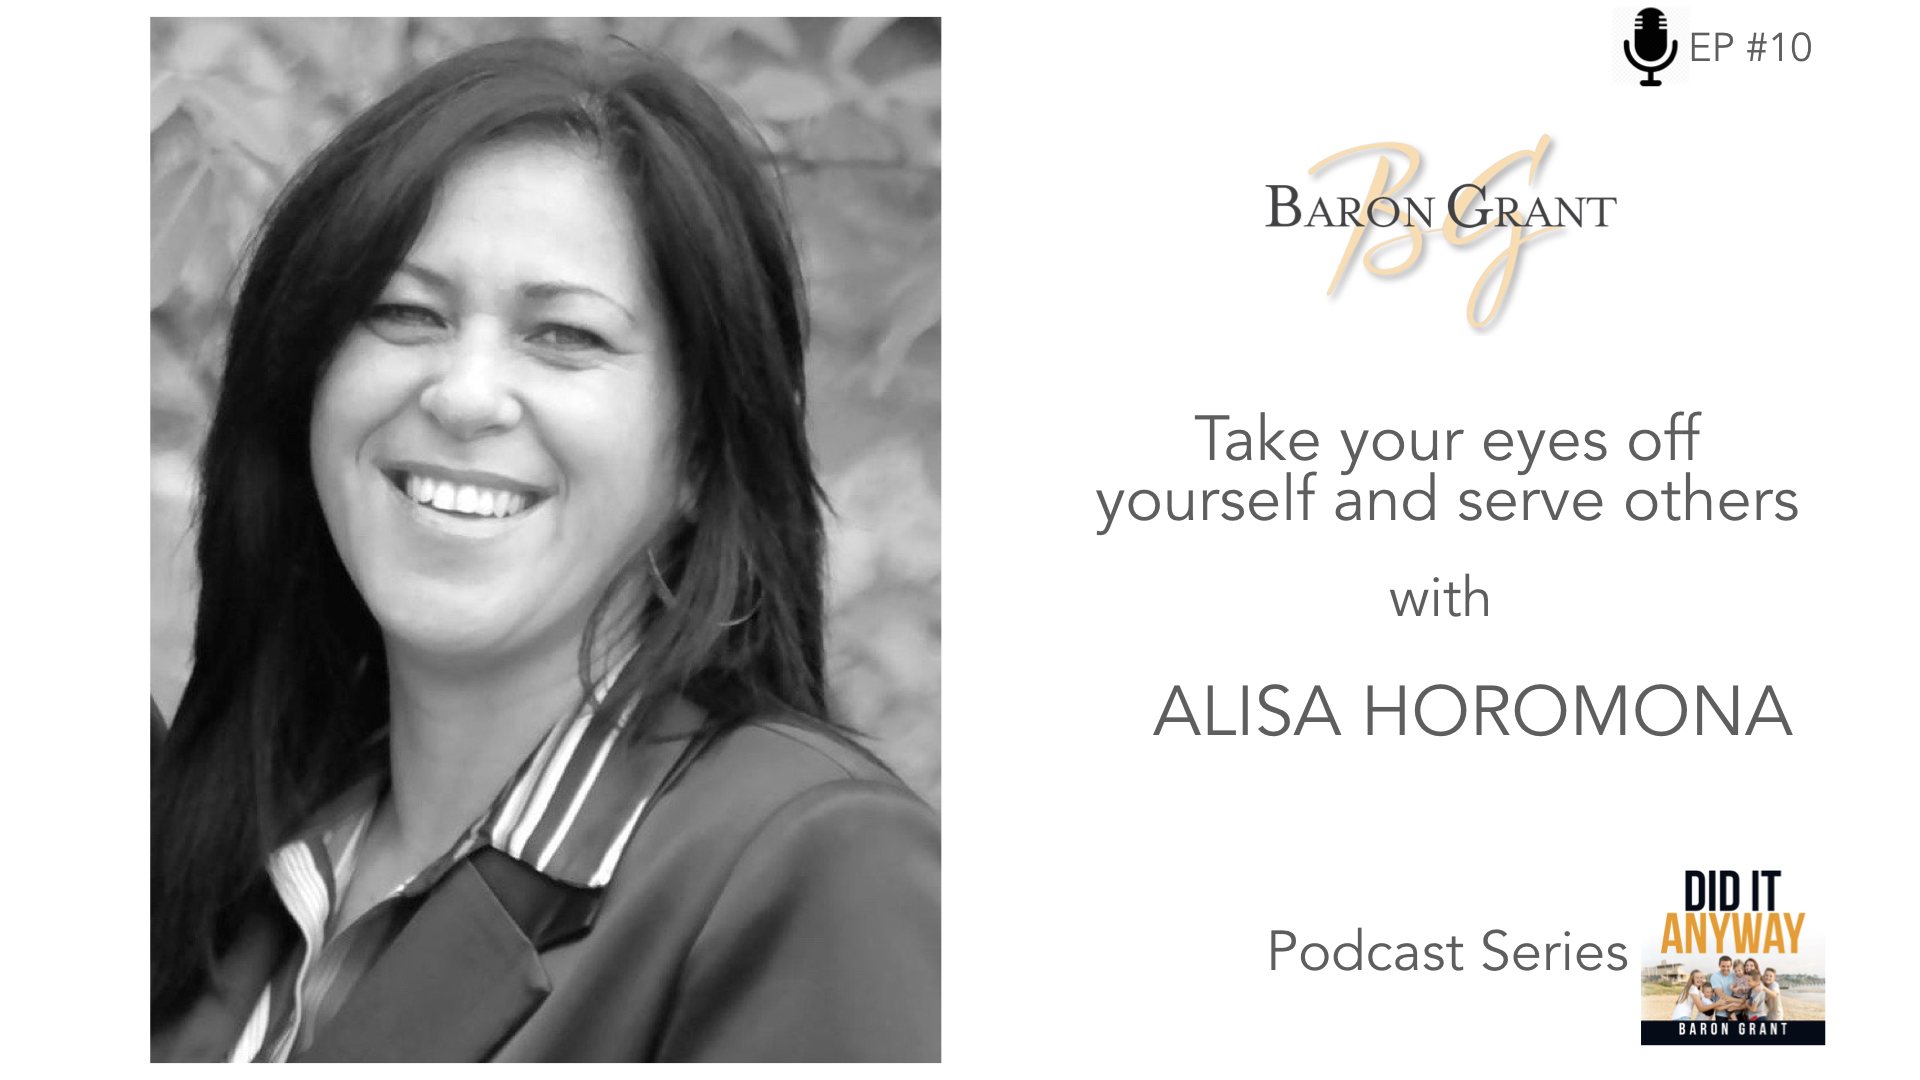 - Wow! What an amazing woman! In this episode of my podcast, DID IT ANYWAY, I had the privilege of interviewing Alisa Horomona. Alisa shares her story of love, humility and faith as she deals with the fear of any parent - the loss of her beautiful son, Breyton. I learnt so much from her on how to deal with tragedy. Alisa holds no bitterness or anger. Instead, she exhibits a greater degree of love and care for people around her. Please join me in listening to her inspirational story! What an amazing example of how to still see beauty in the midst of horrible times.